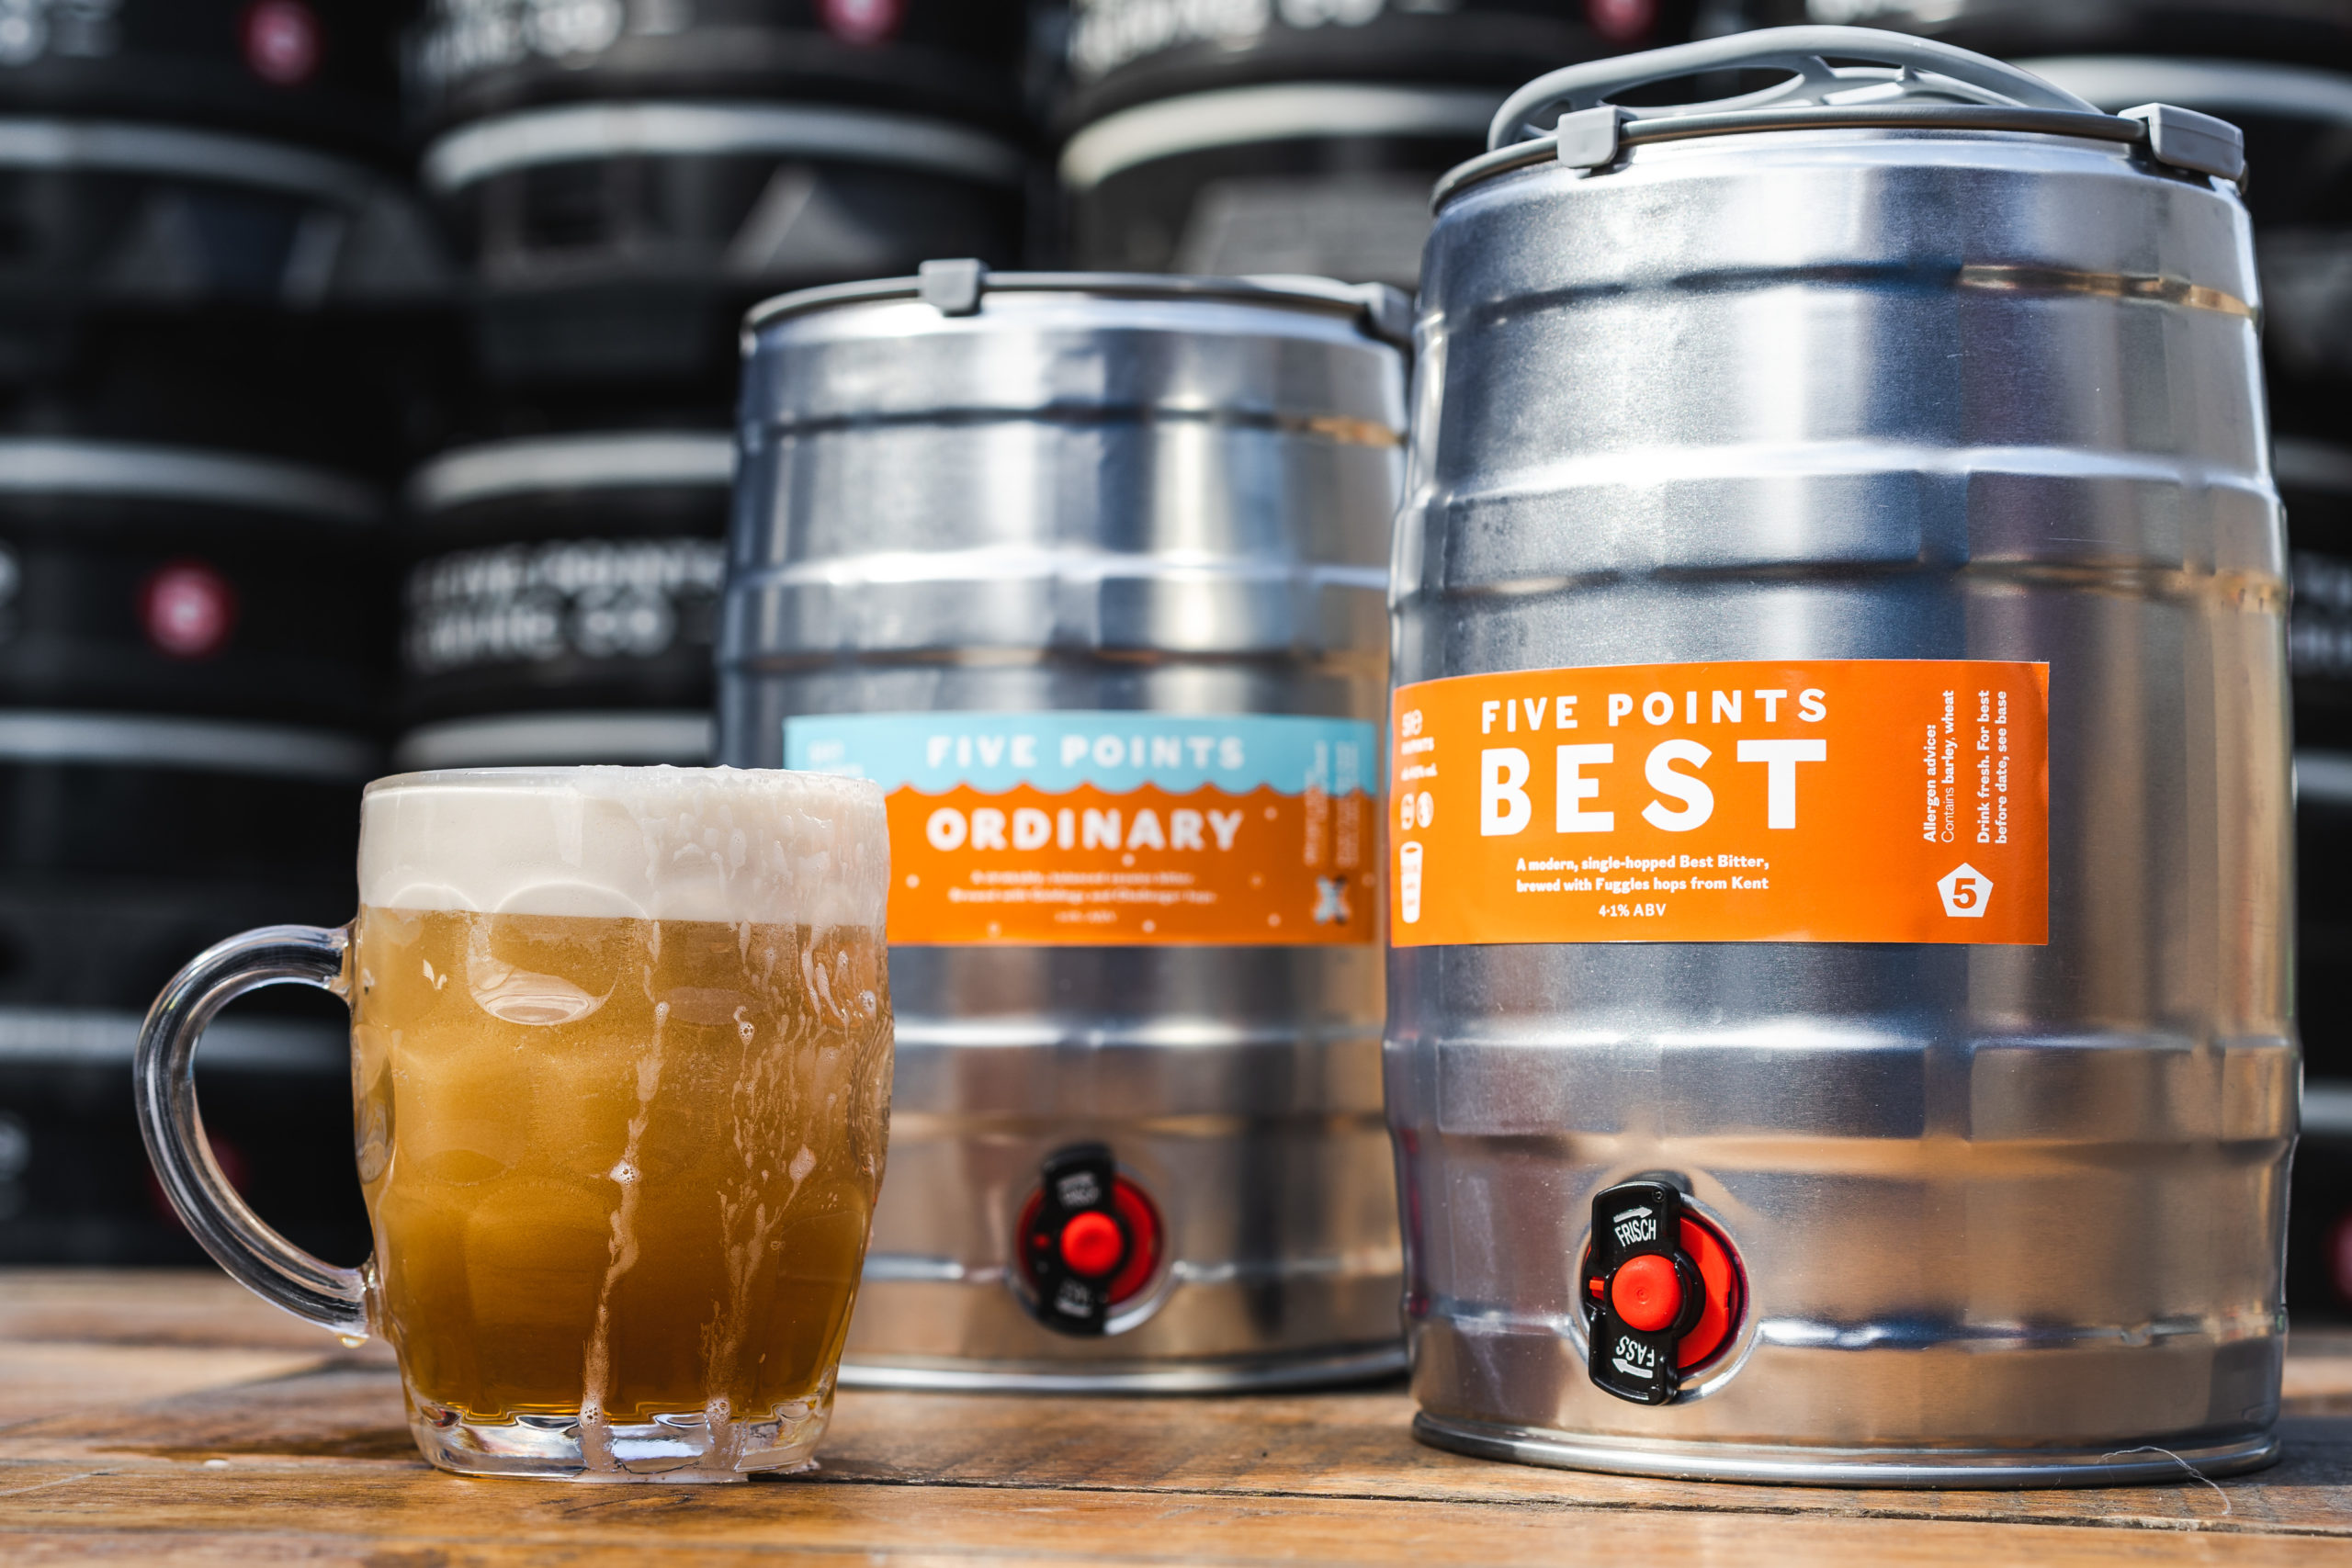 Five Points Brewery offers 5L mini casks for home landlords